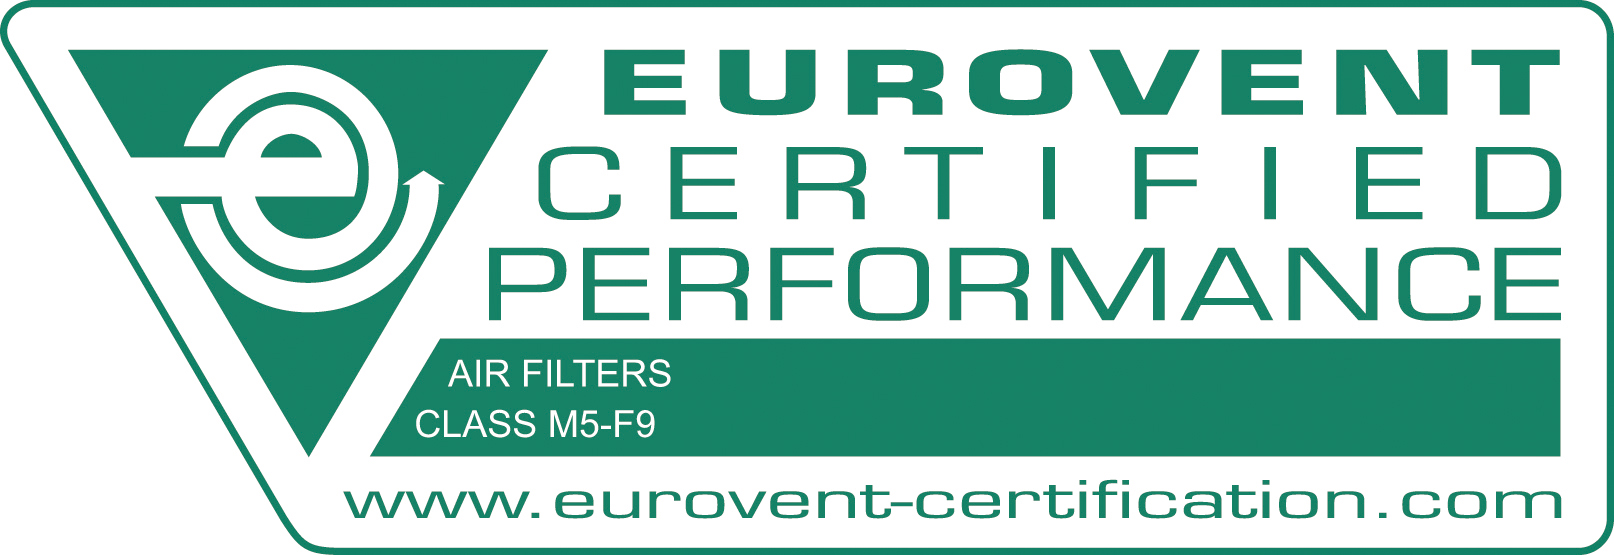 Eurovent Certificate